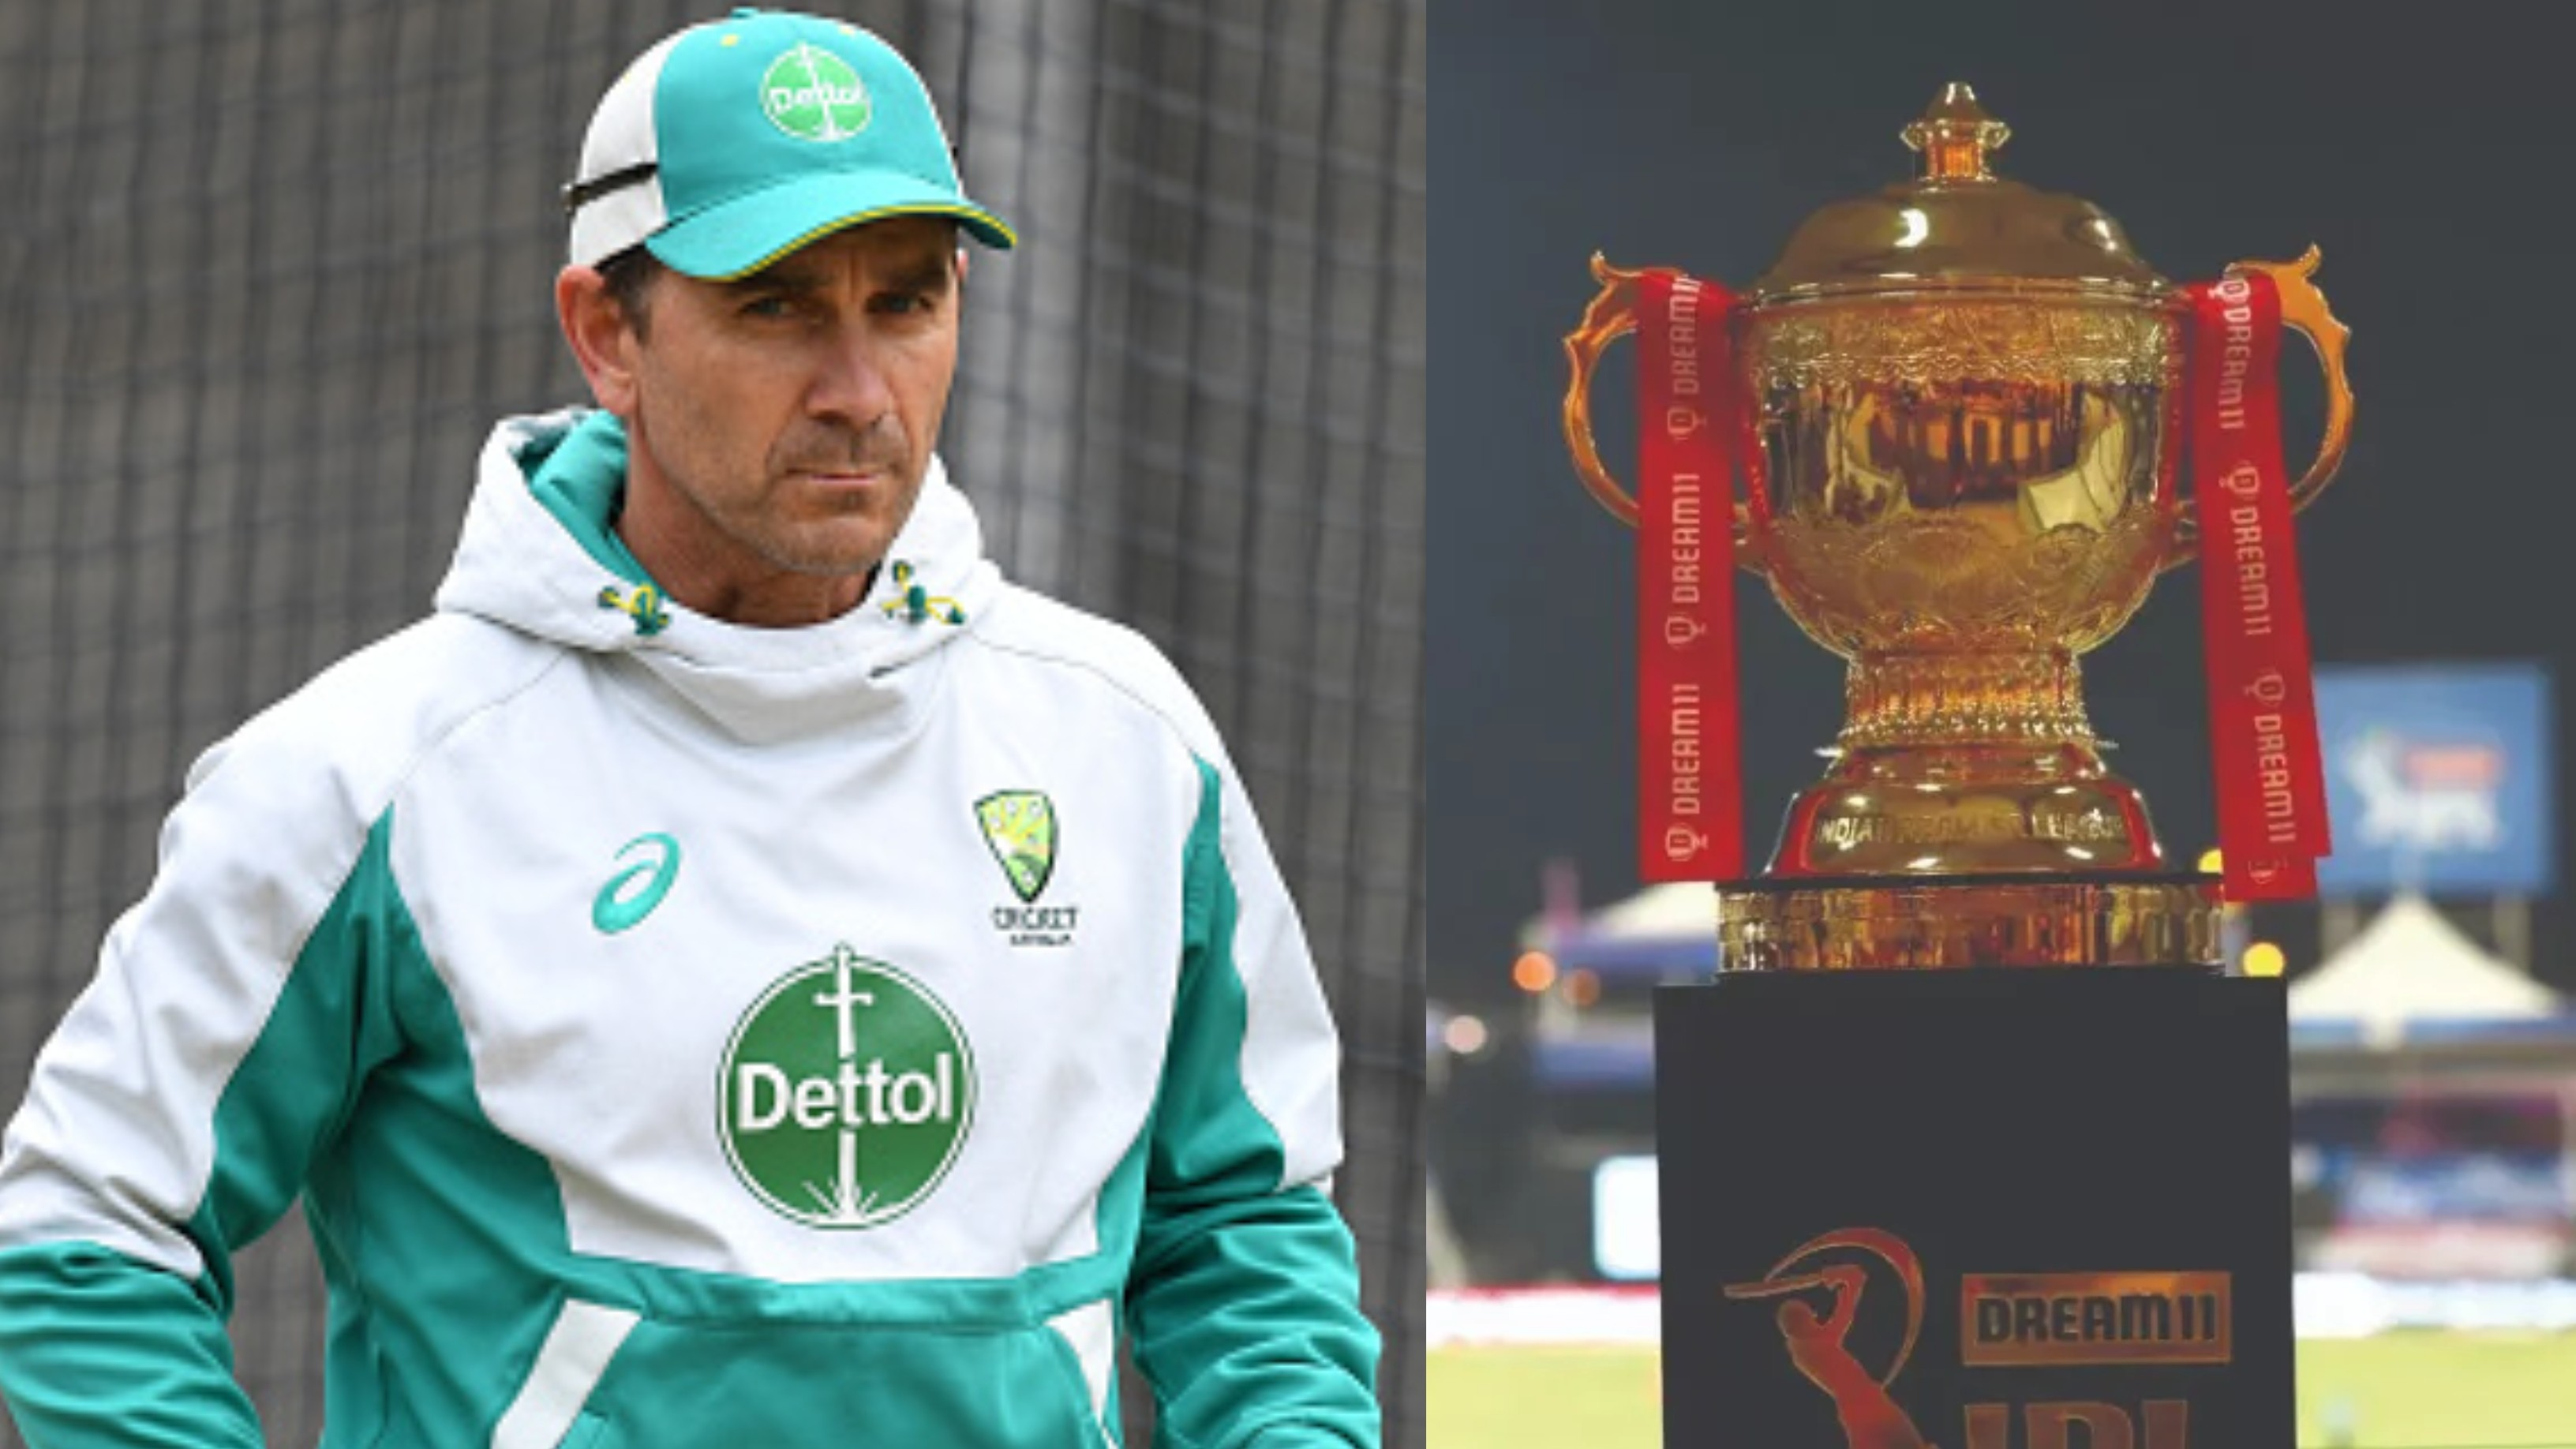 AUS v IND 2020-21: Justin Langer blames ill-timed IPL 2020 for injury-marred Test series